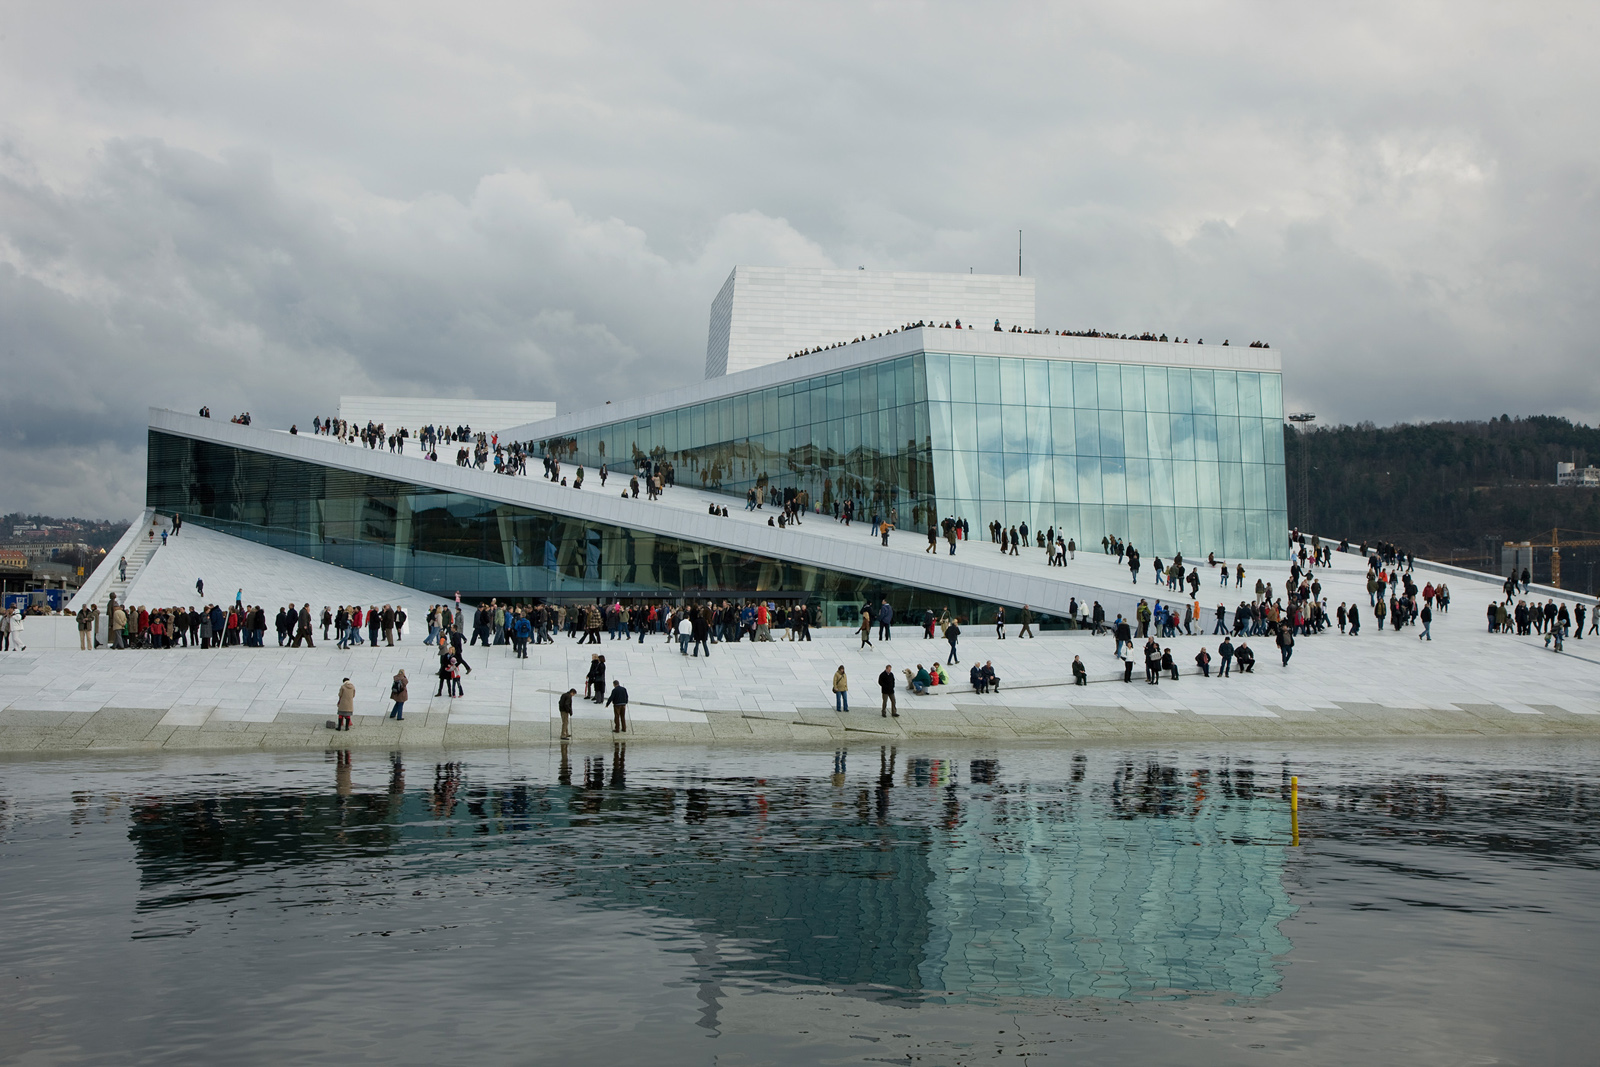 The New Norwegian National Opera and Ballet in Oslo, Norway. Photo by Jens Passoth, courtesy Snøhetta and SFMoMA.